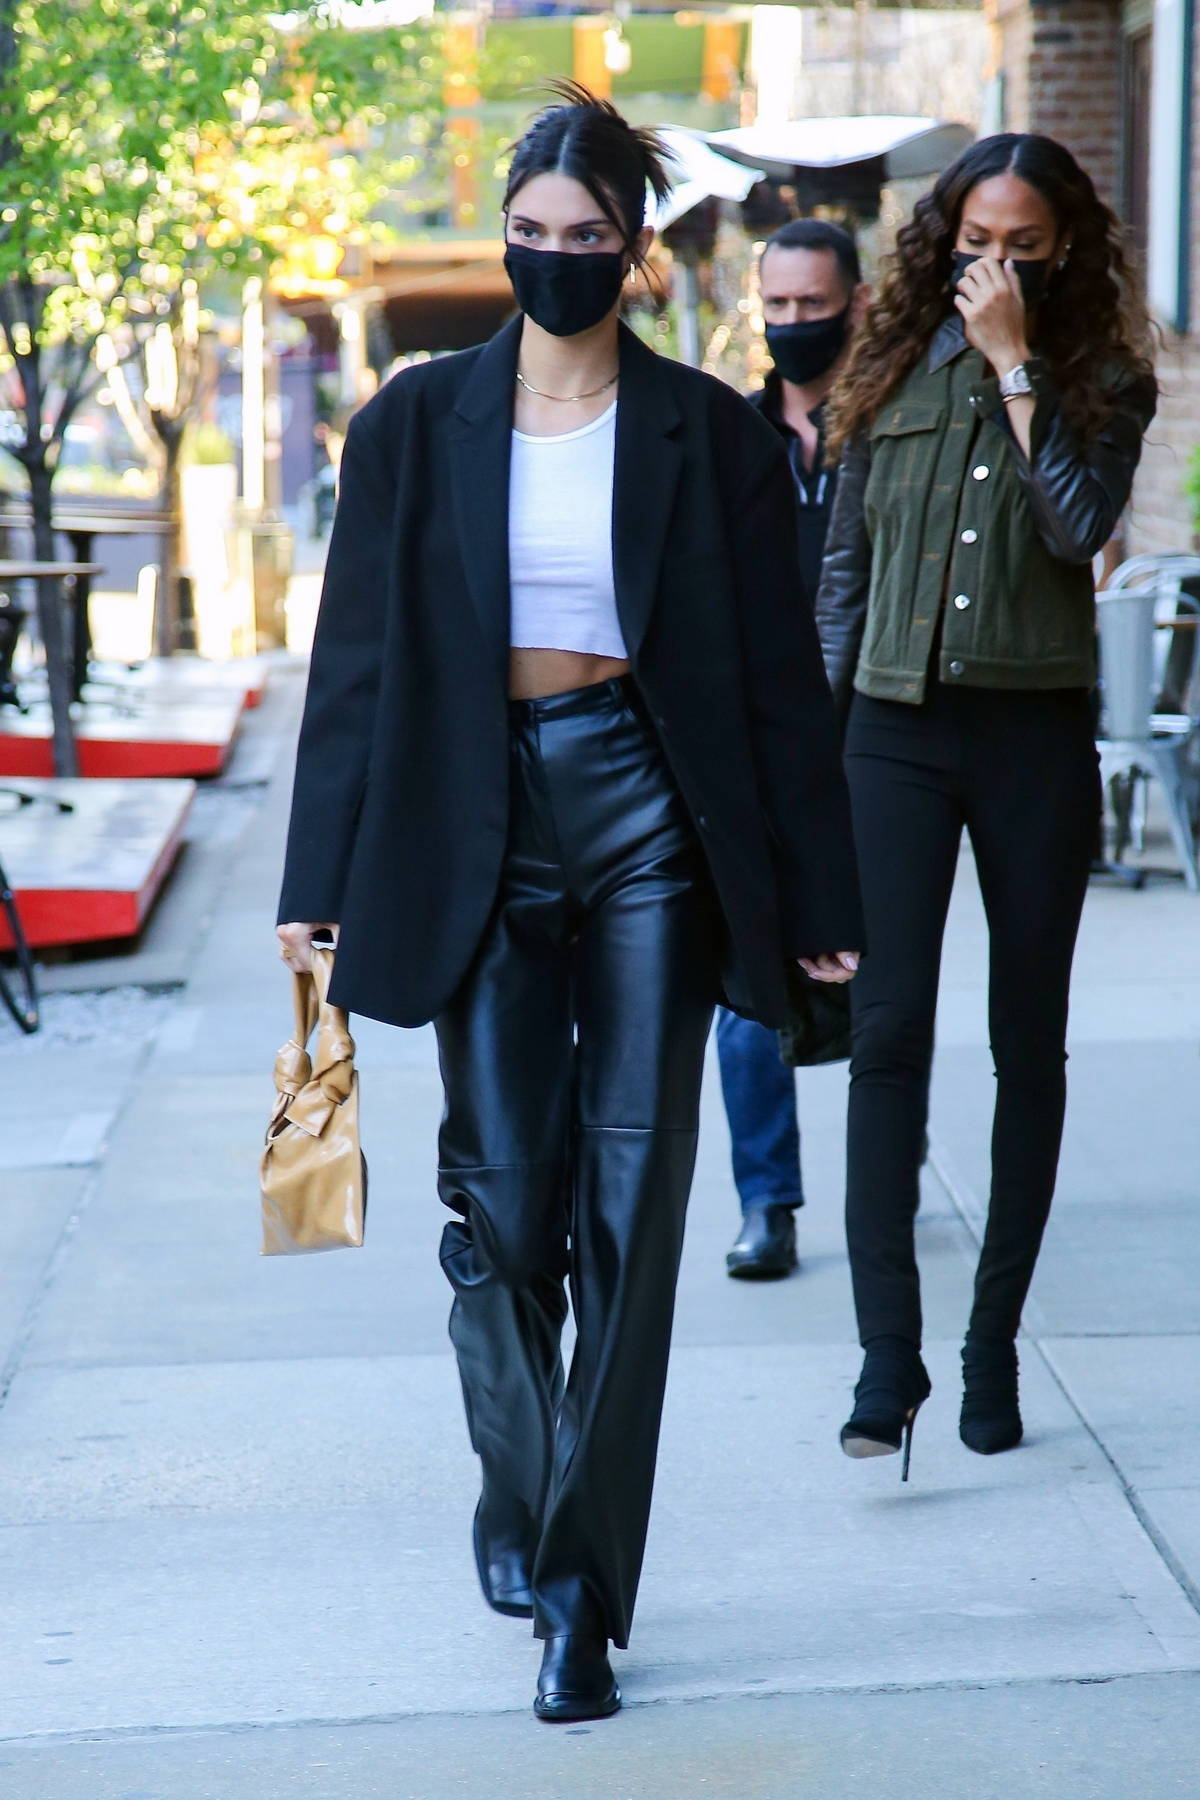 Kendall Jenner looks super chic in black leather pants with matching blazer while heading out with Joan Smalls in New York City